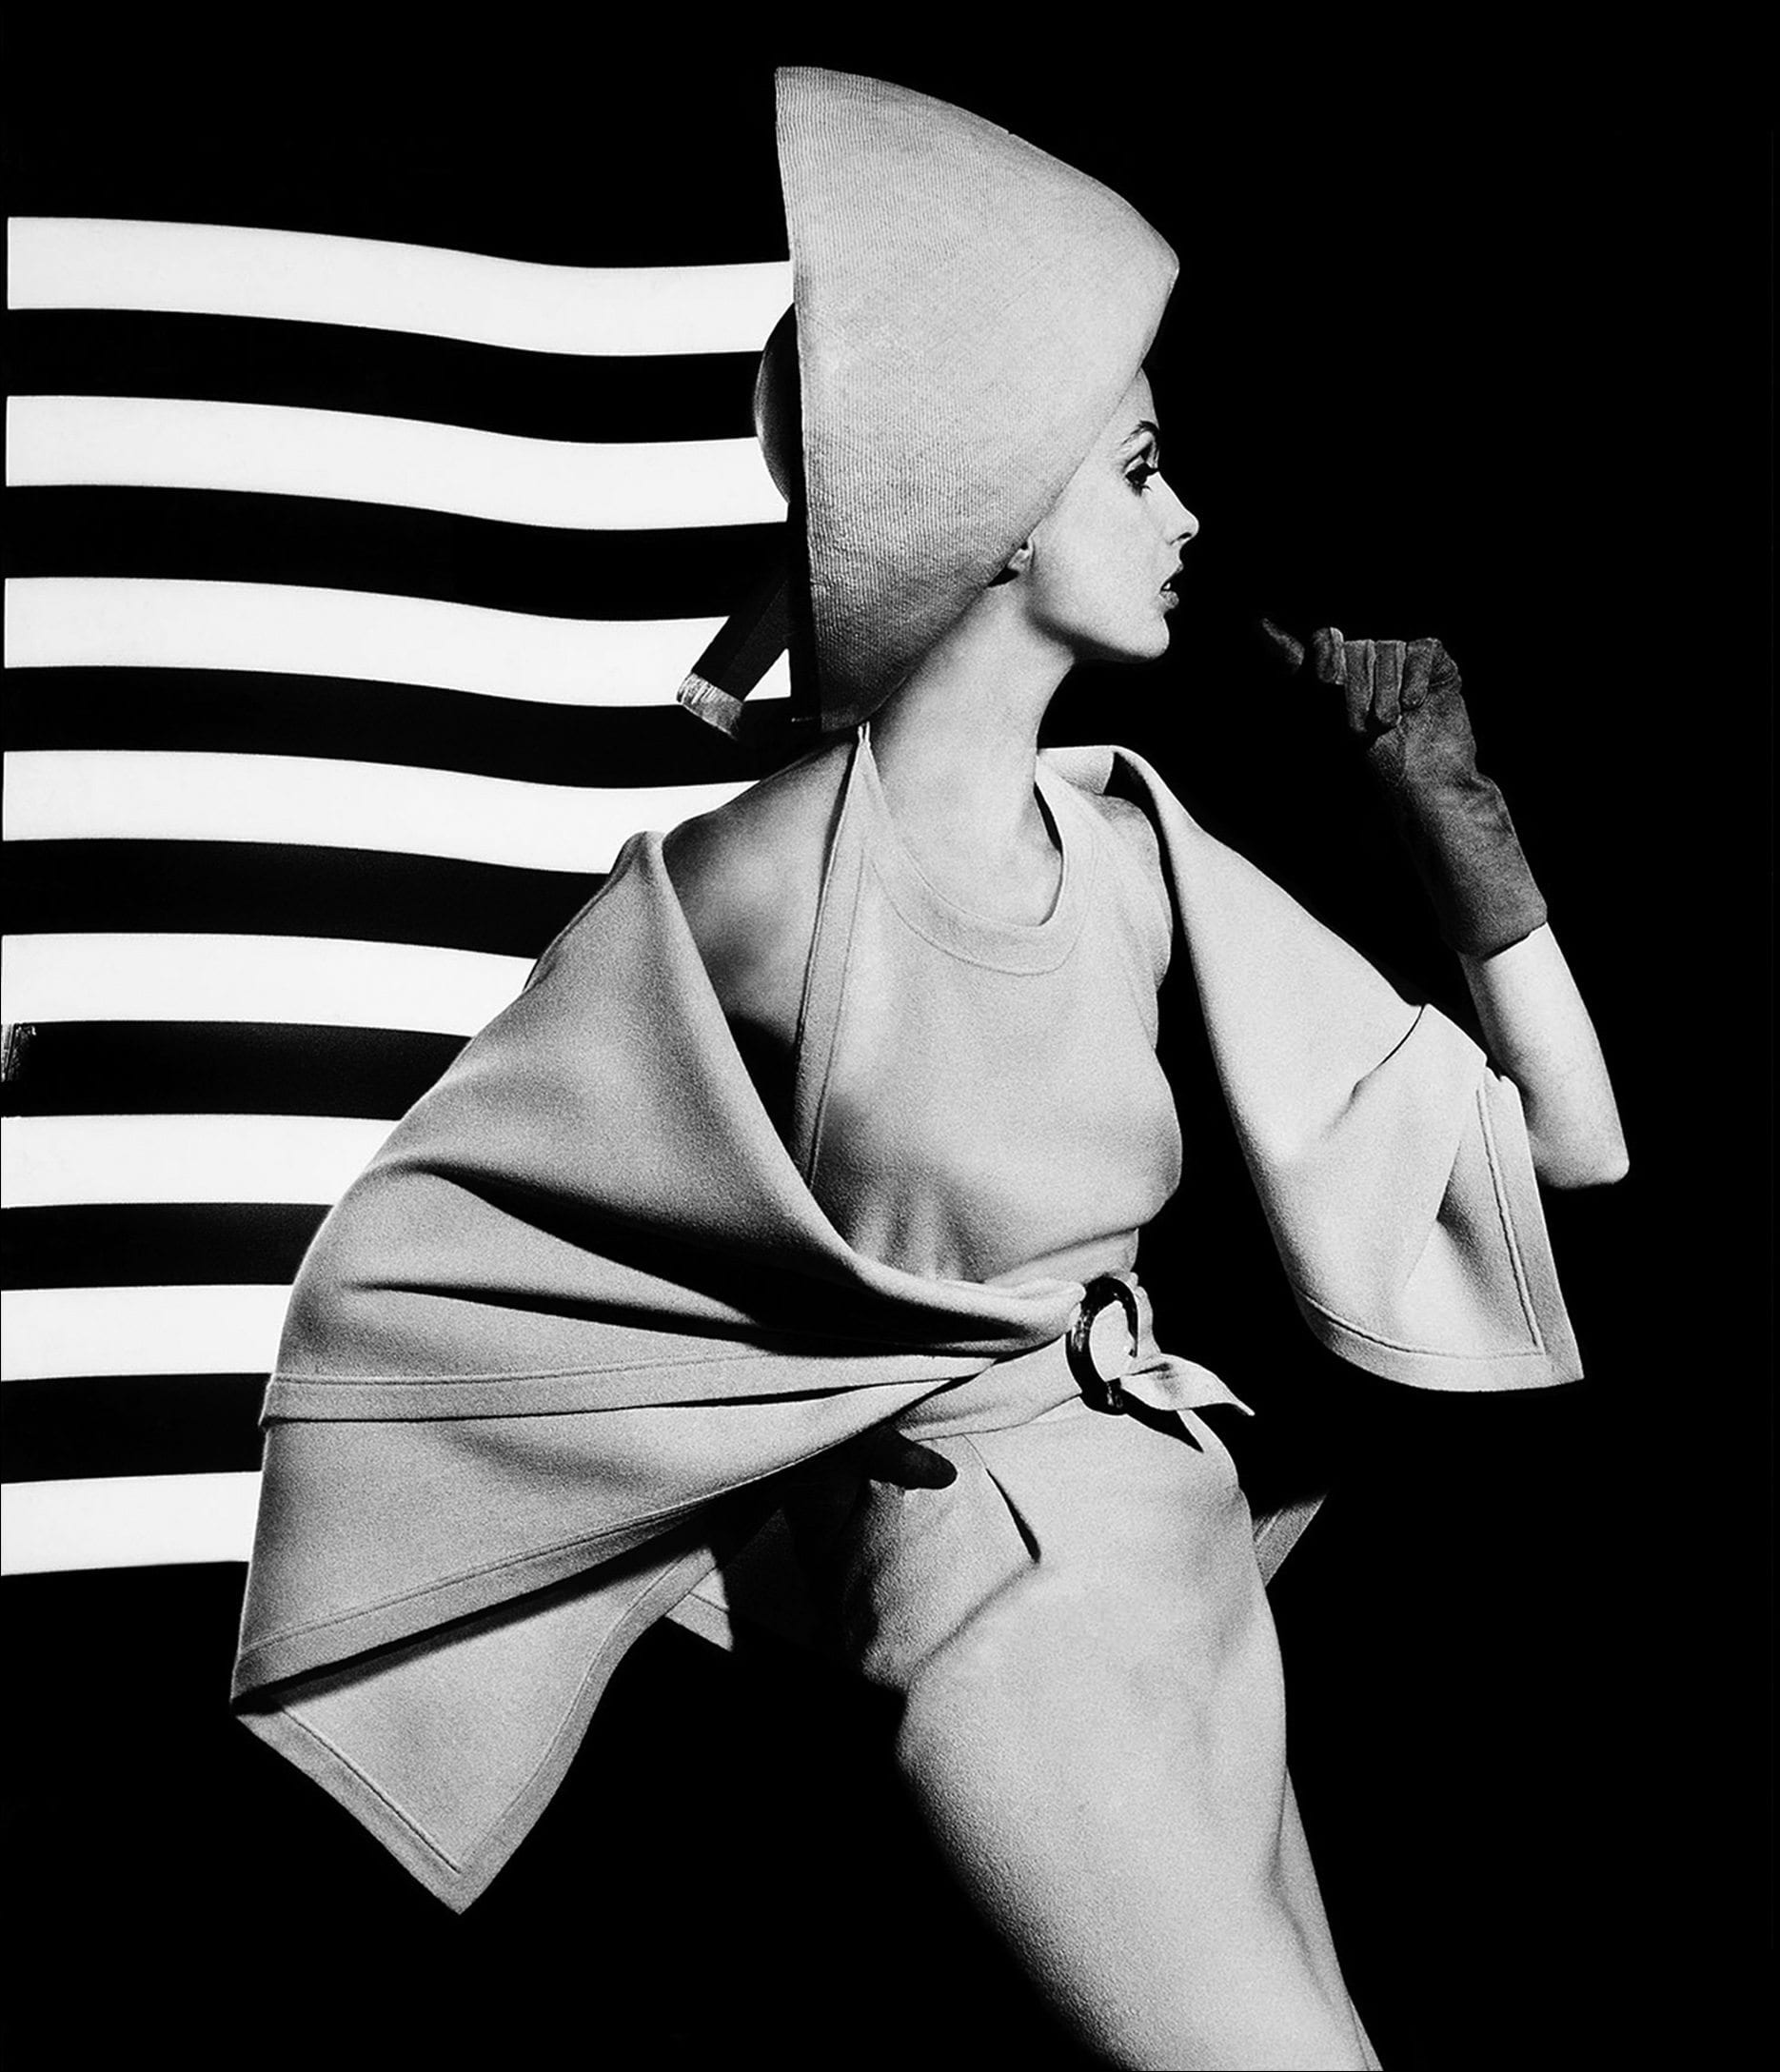 William Klein - Dorothy + white light stripes, Paris, 1962